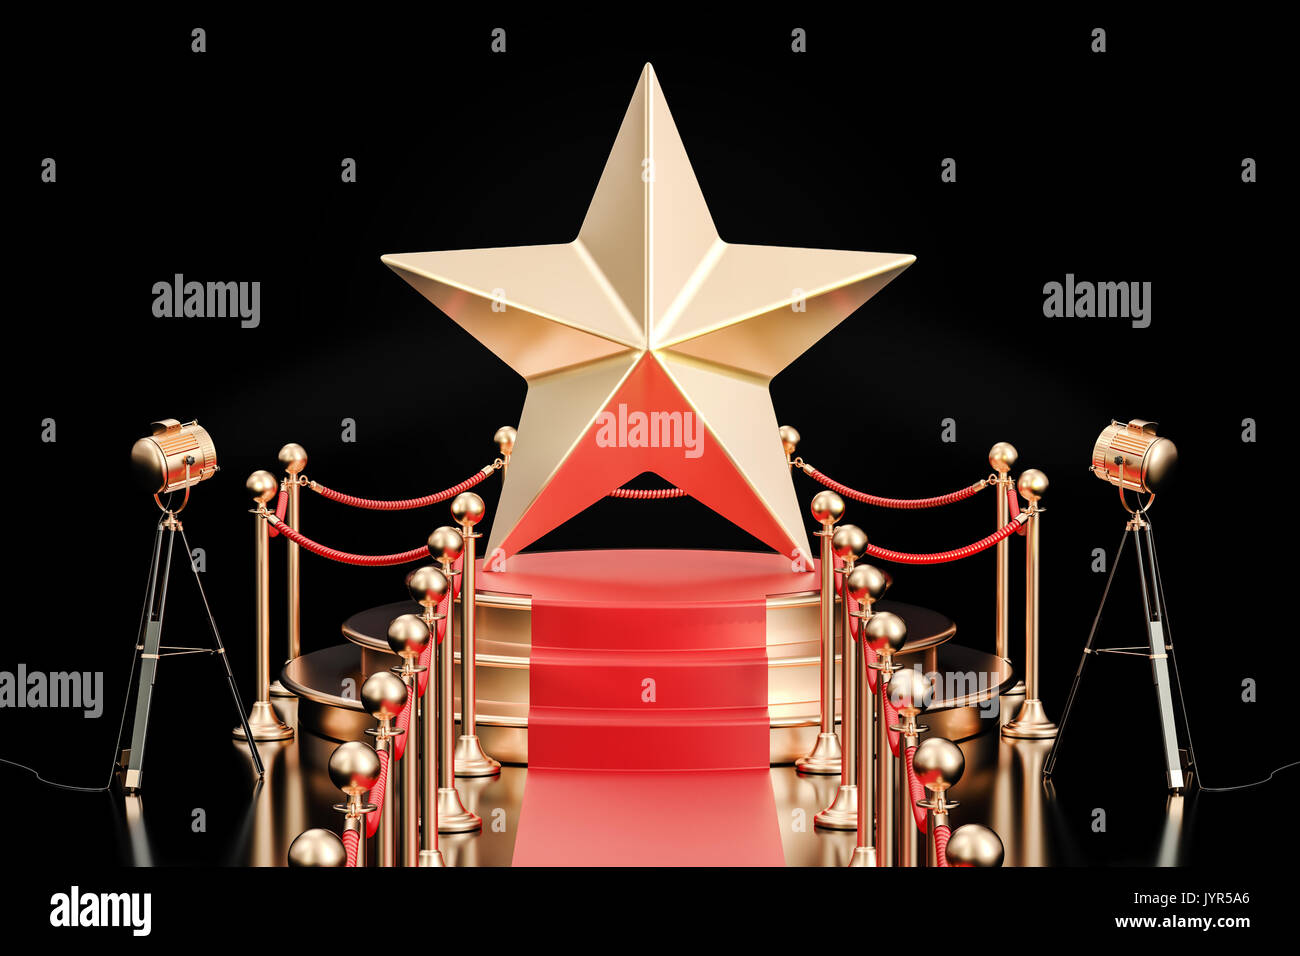 Podium with golden star, 3D rendering isolated on black background - Stock Image